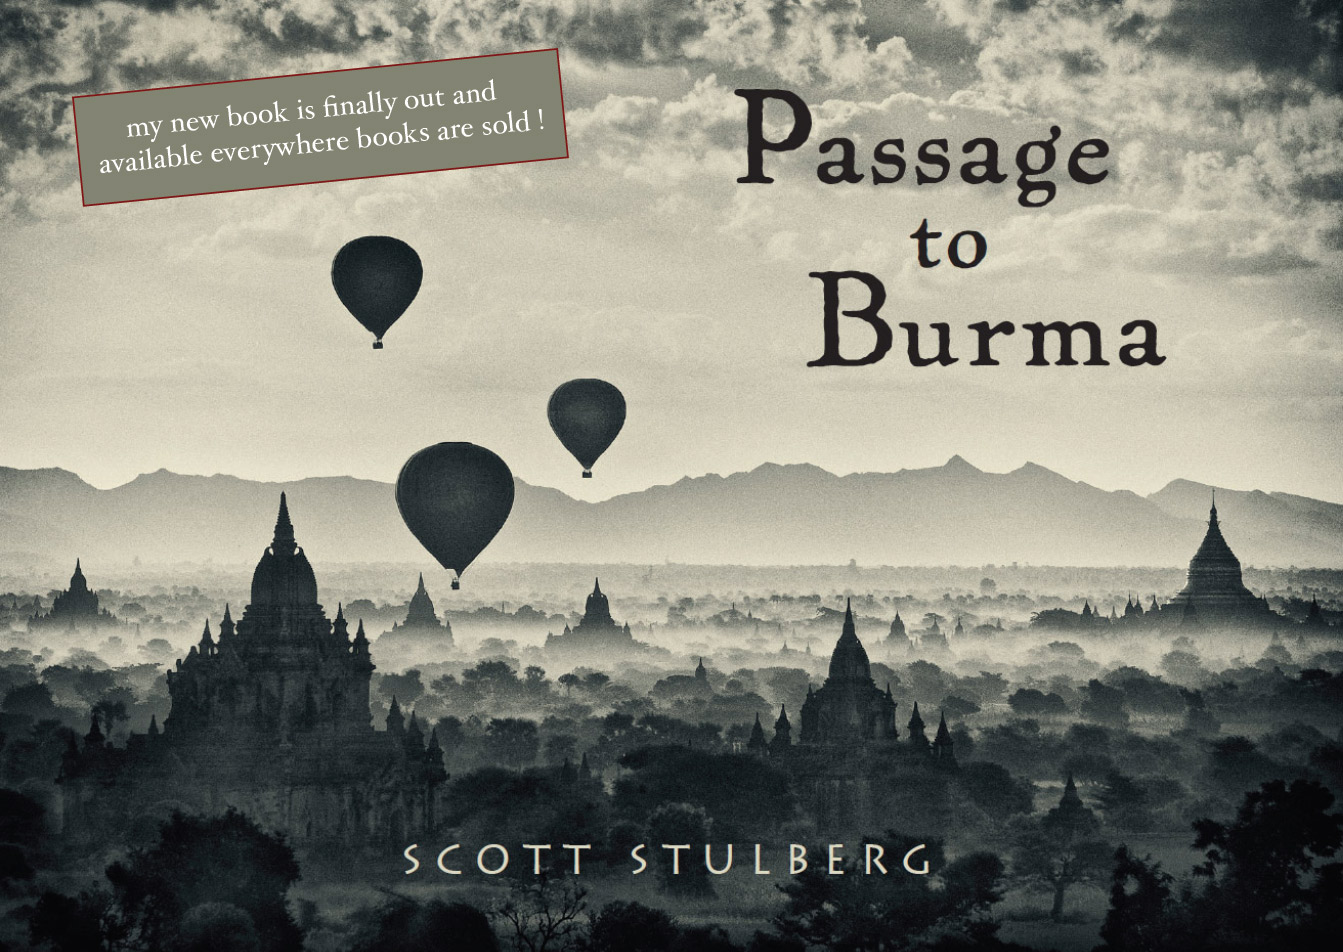 Passage to Burma,  my new book